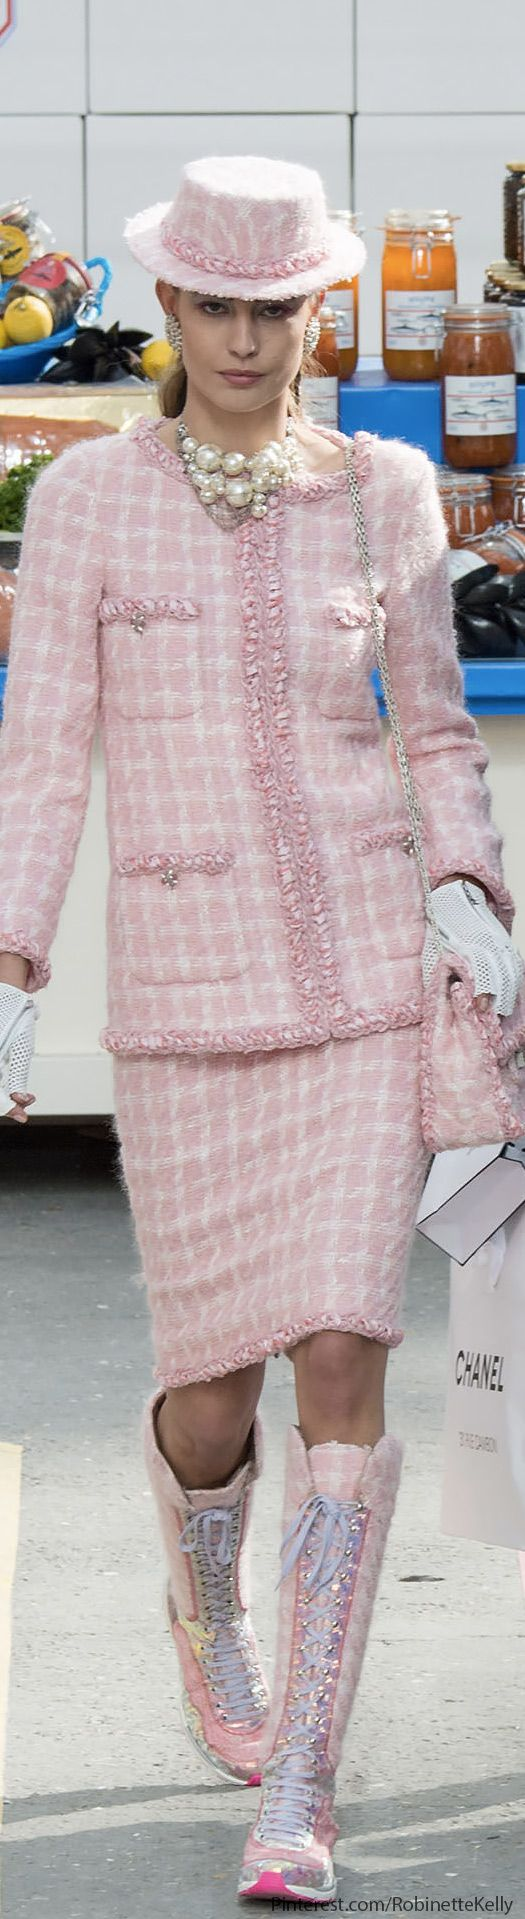 Chanel | F/W 2014 RTW…It may be Chanel, but she looks a bit dumpy!! Just saying'